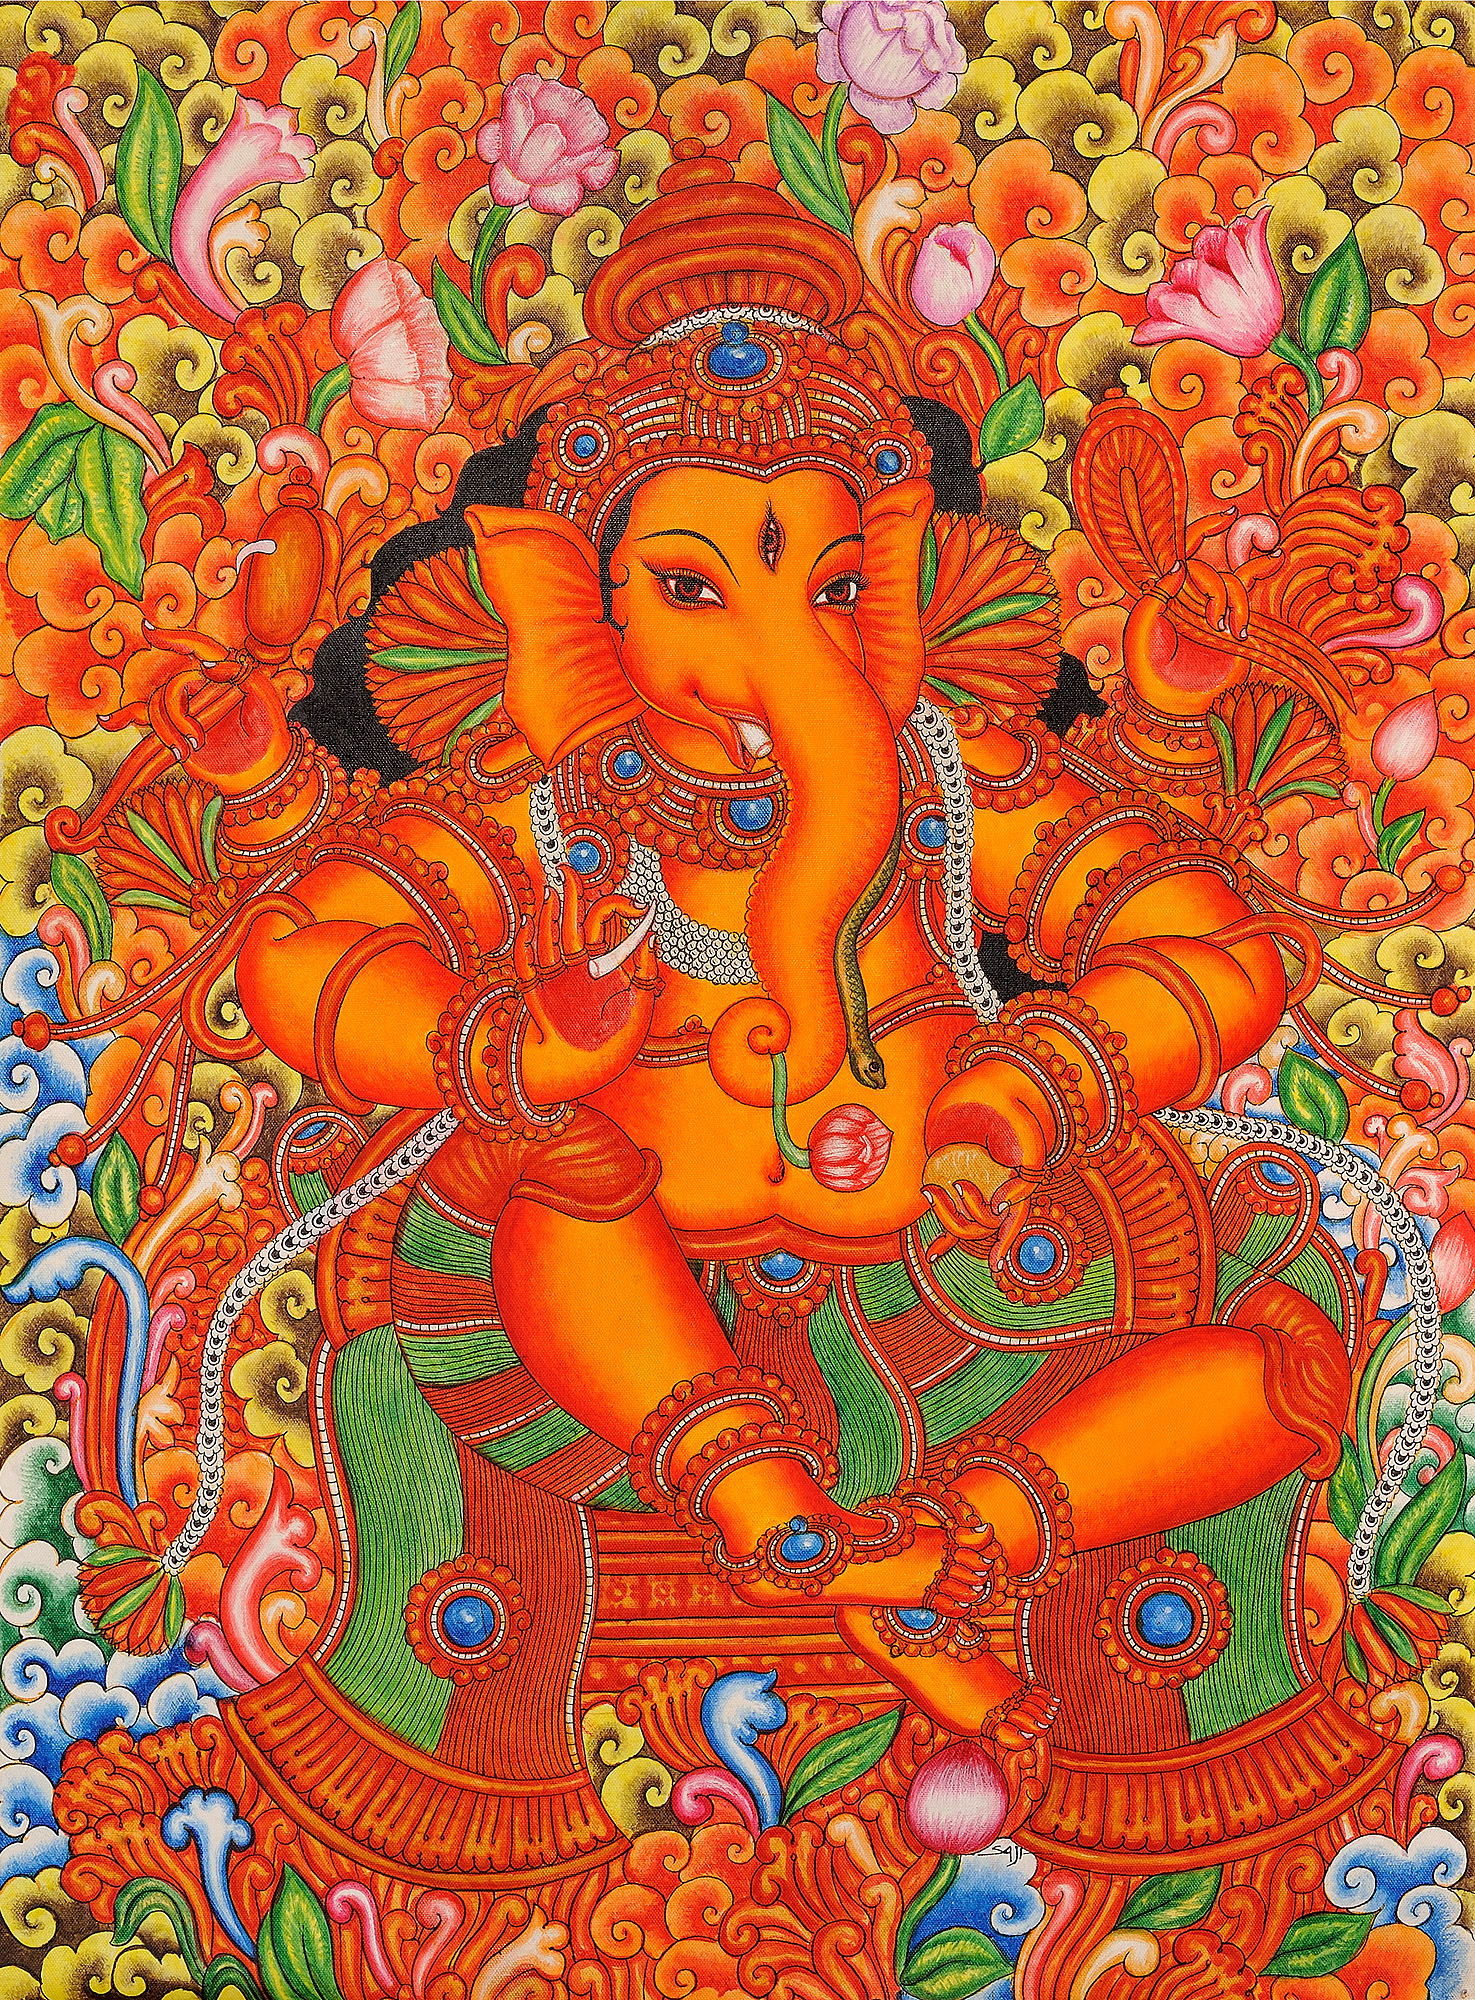 Lord ganesha in the style of mattanchery palace murals for Buy kerala mural paintings online